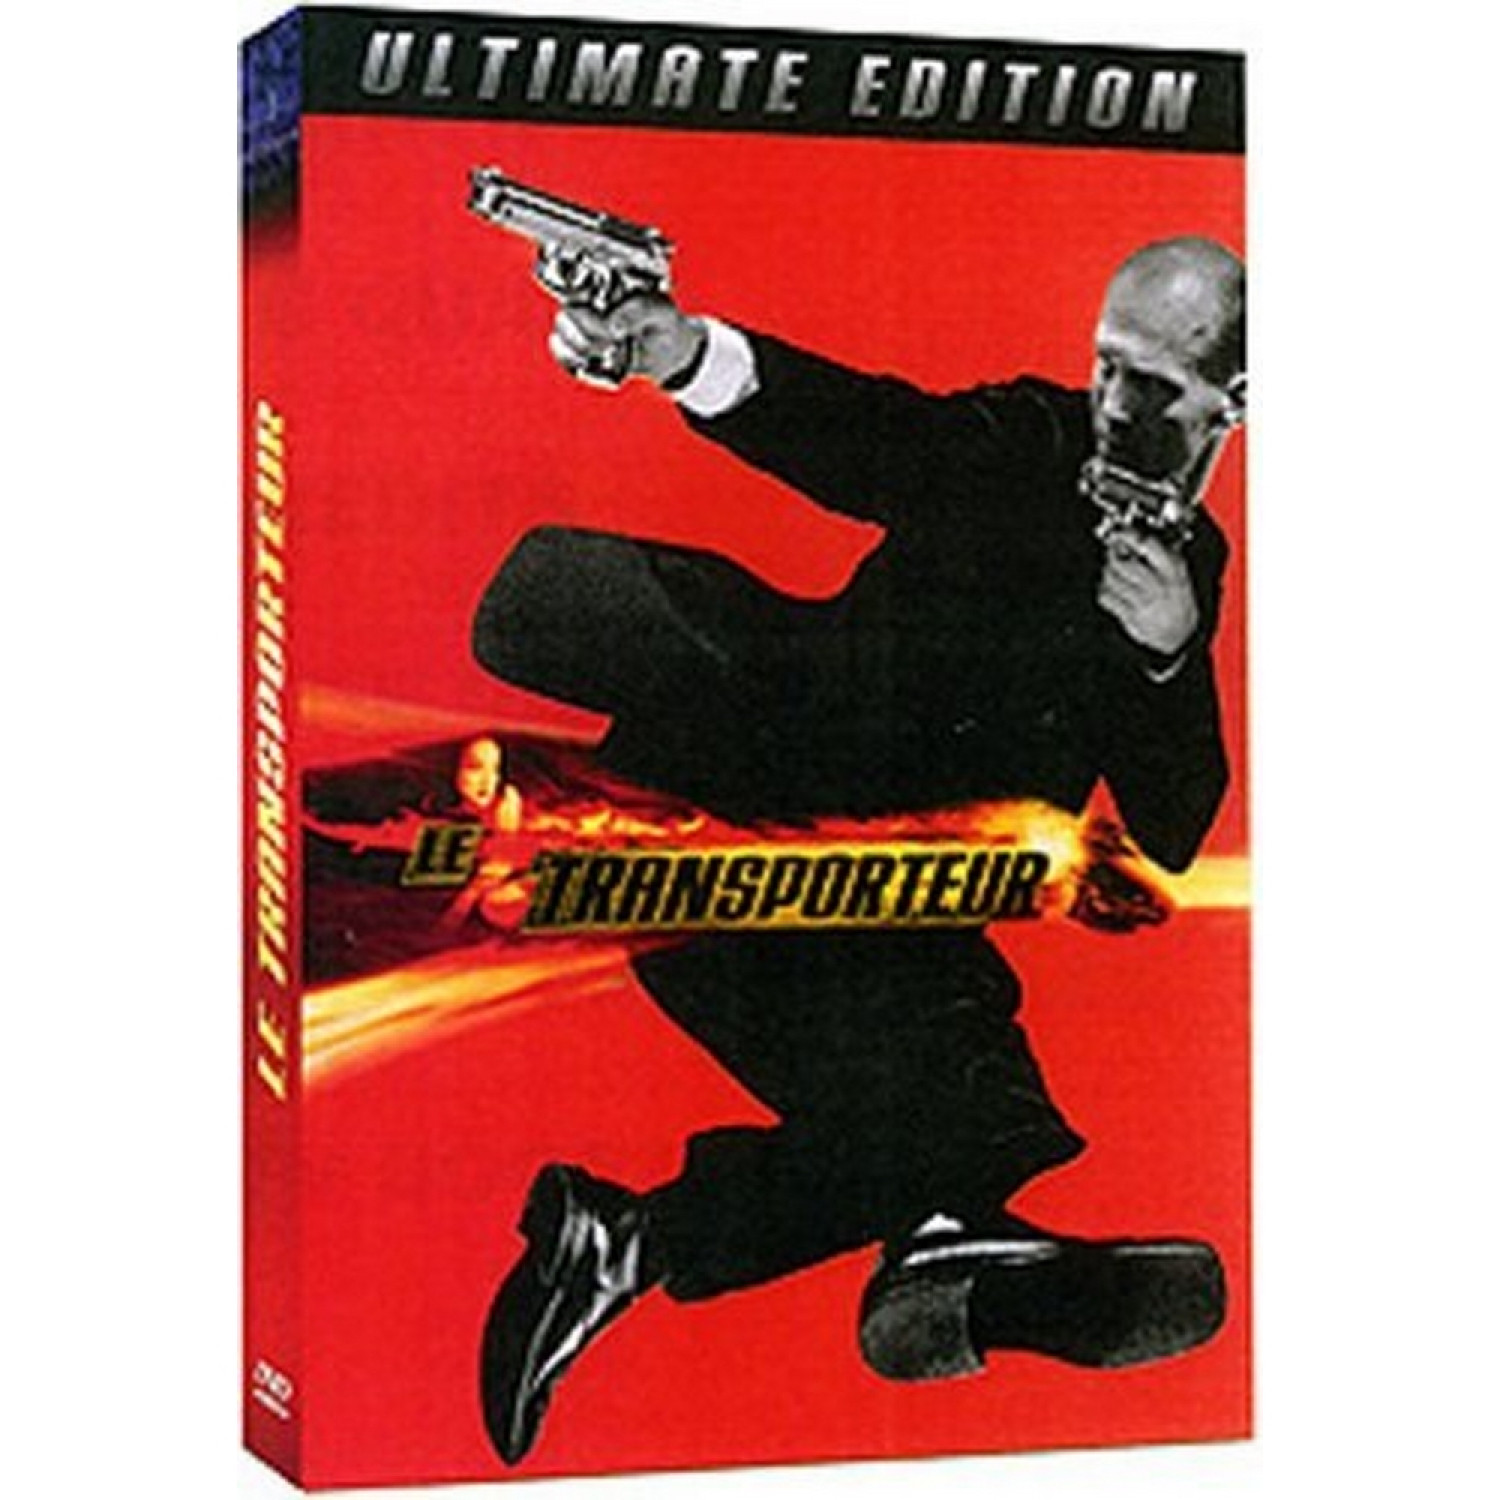 Le Transporteur - Ultimate Edition Thx 2 Dvd